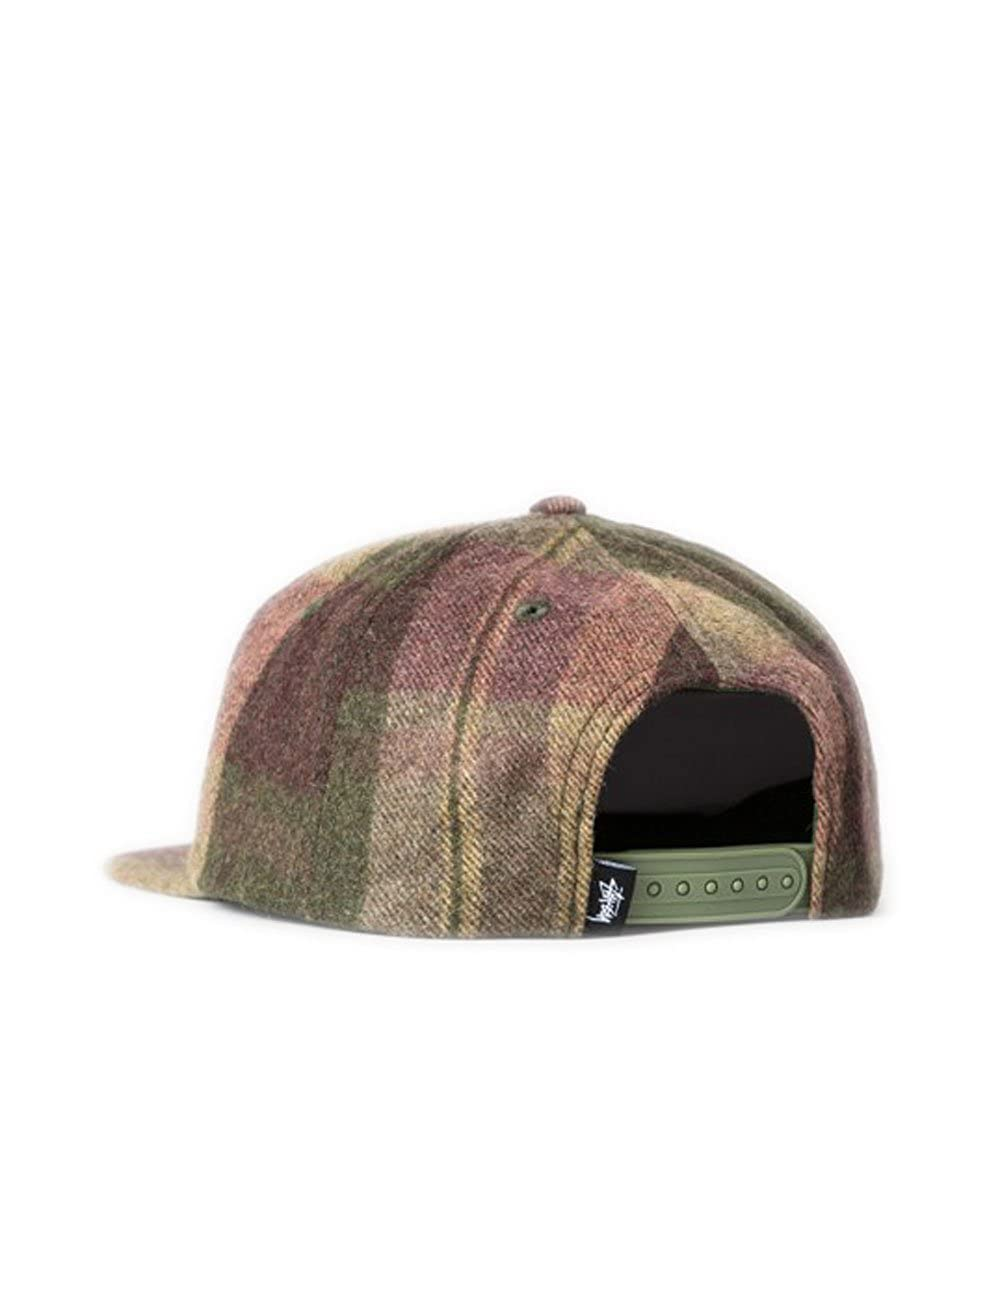 Stussy Smooth Wool Snapback Cap - Olive-One Size  Amazon.co.uk  Clothing 5ad2d08fefc1